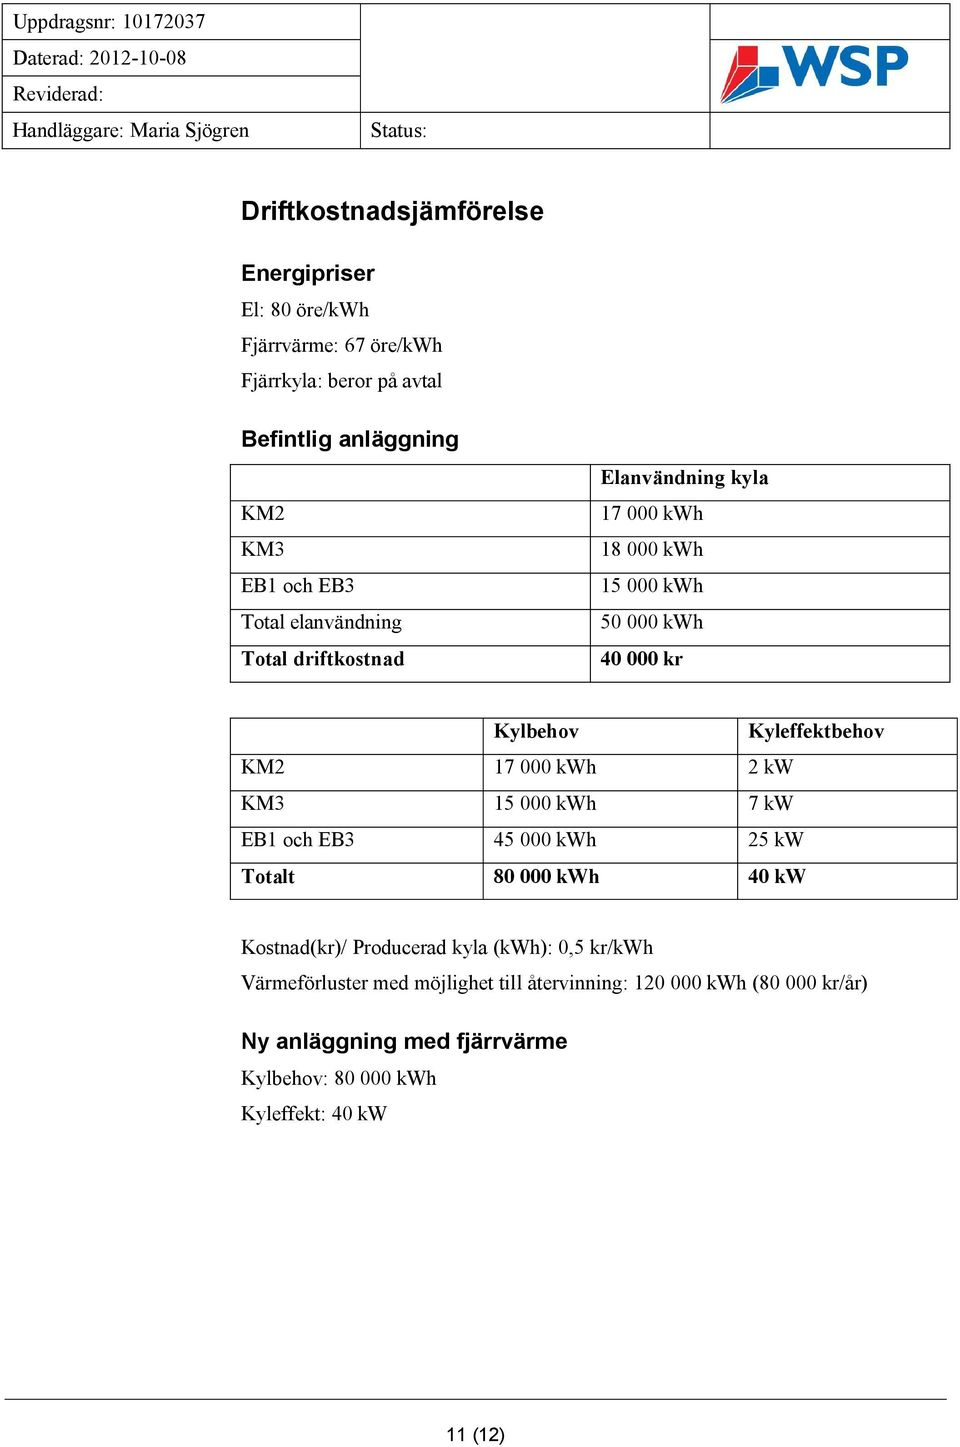 KM2 17 000 kwh 2 kw KM3 15 000 kwh 7 kw EB1 och EB3 45 000 kwh 25 kw Totalt 80 000 kwh 40 kw Kostnad(kr)/ Producerad kyla (kwh): 0,5 kr/kwh